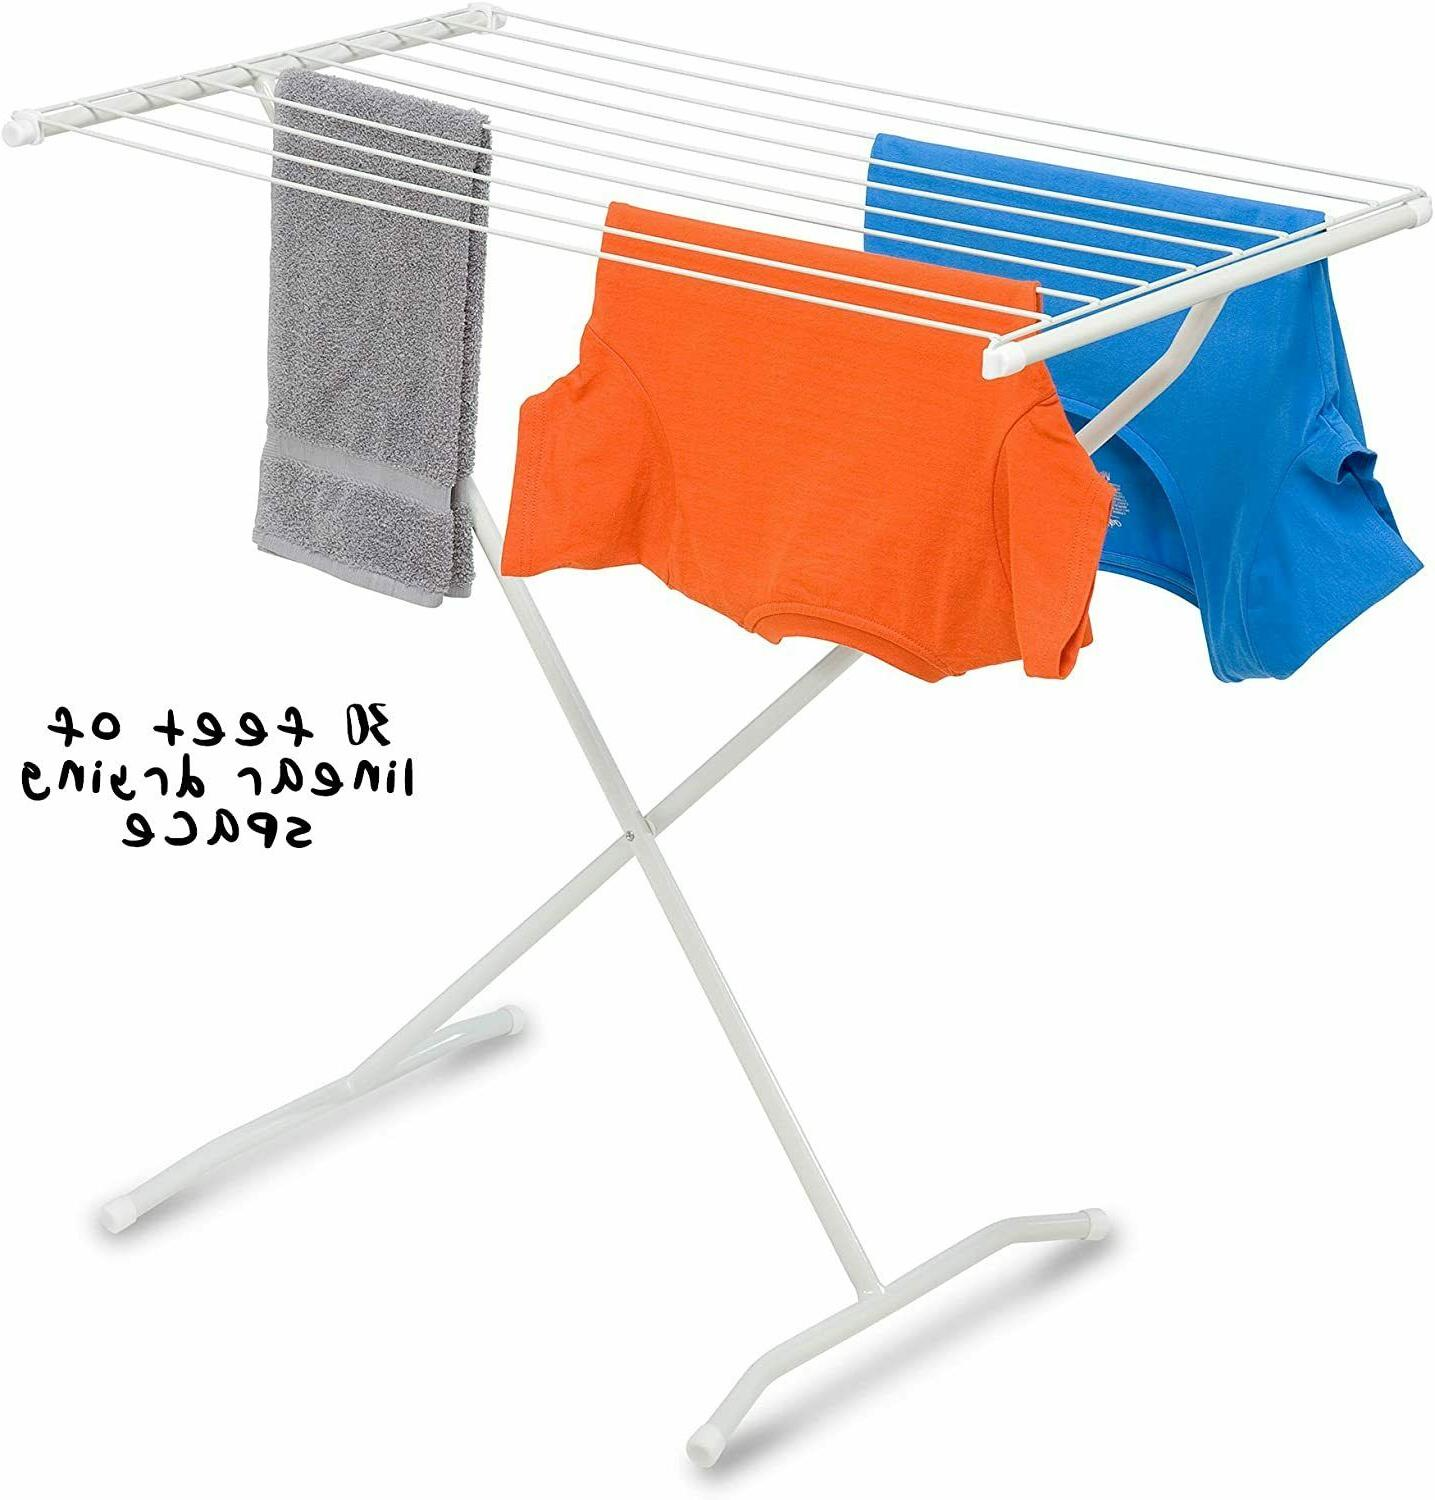 Folding Laundry Drying Rack Clothes Portable Large Lightweig